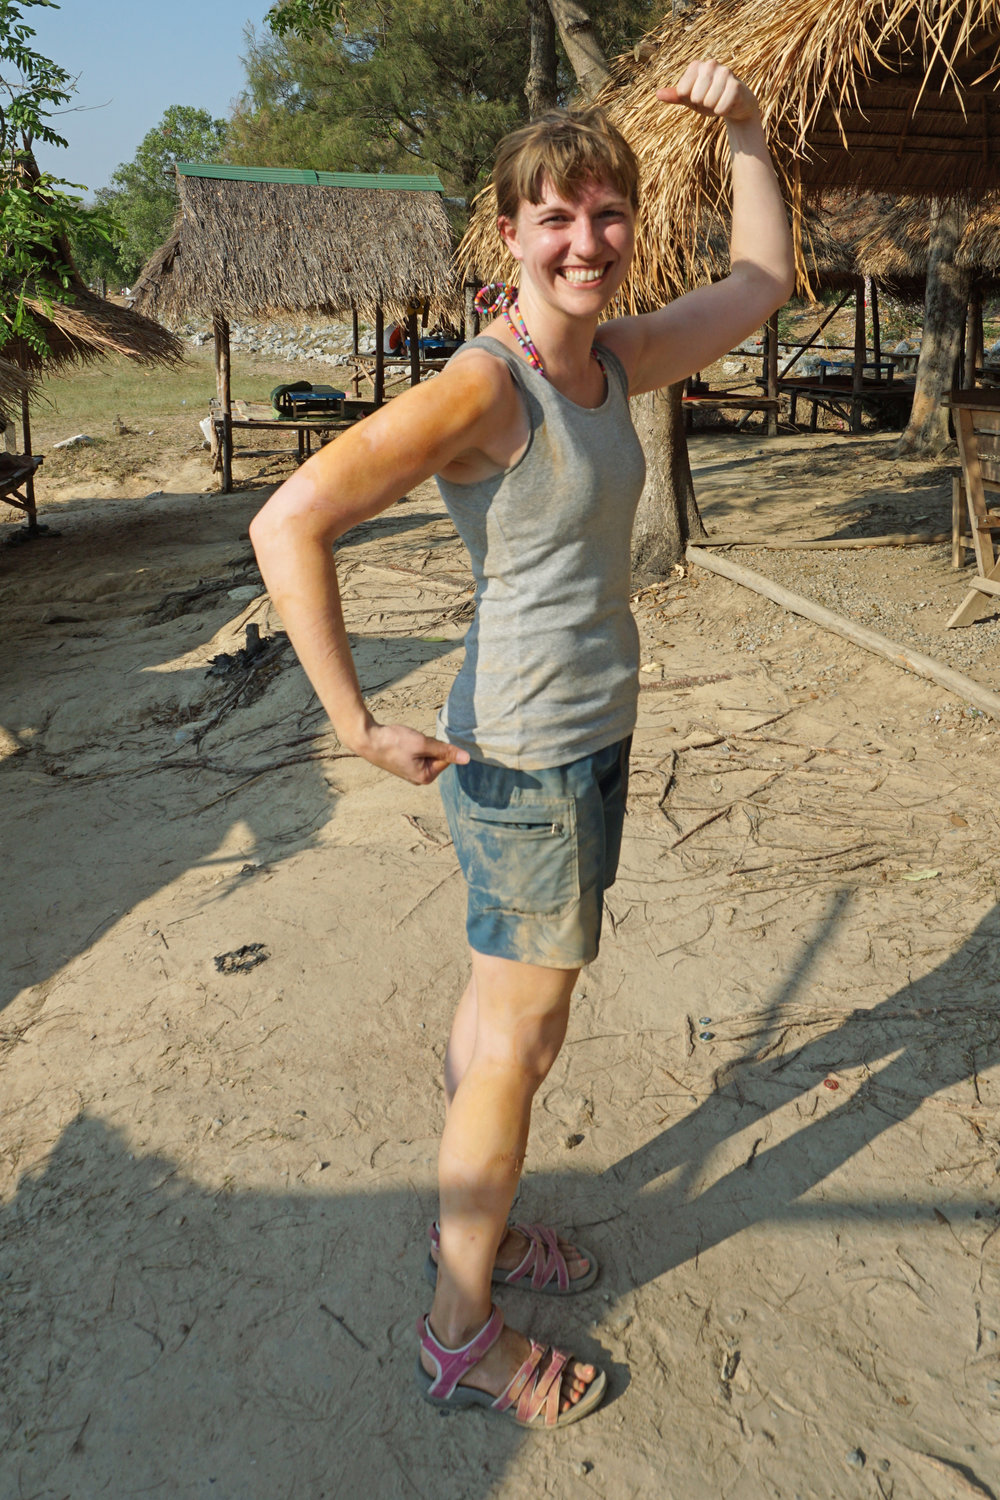 Showing off my dirt stains after mountain biking, Chiang Mai